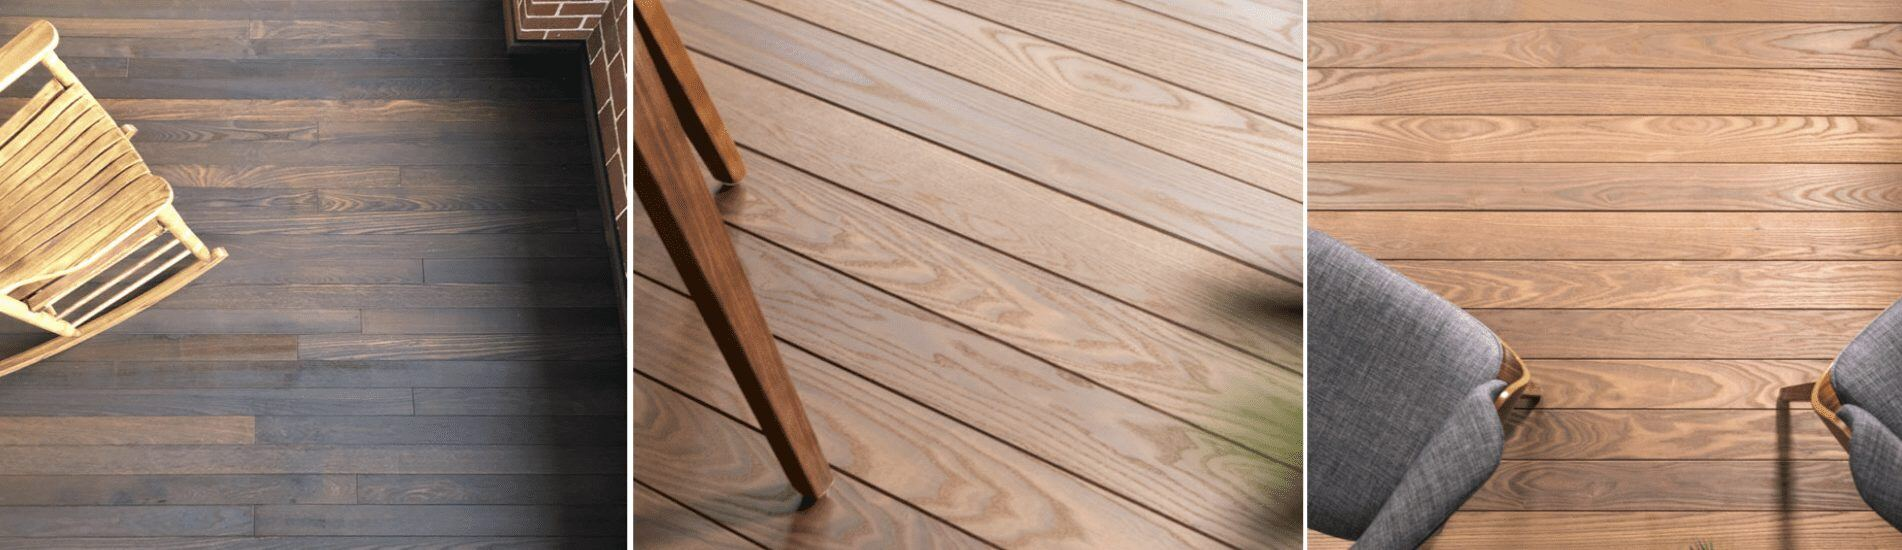 06 15 00.01 Thermally Modified Wood Decking (Ash Wood)